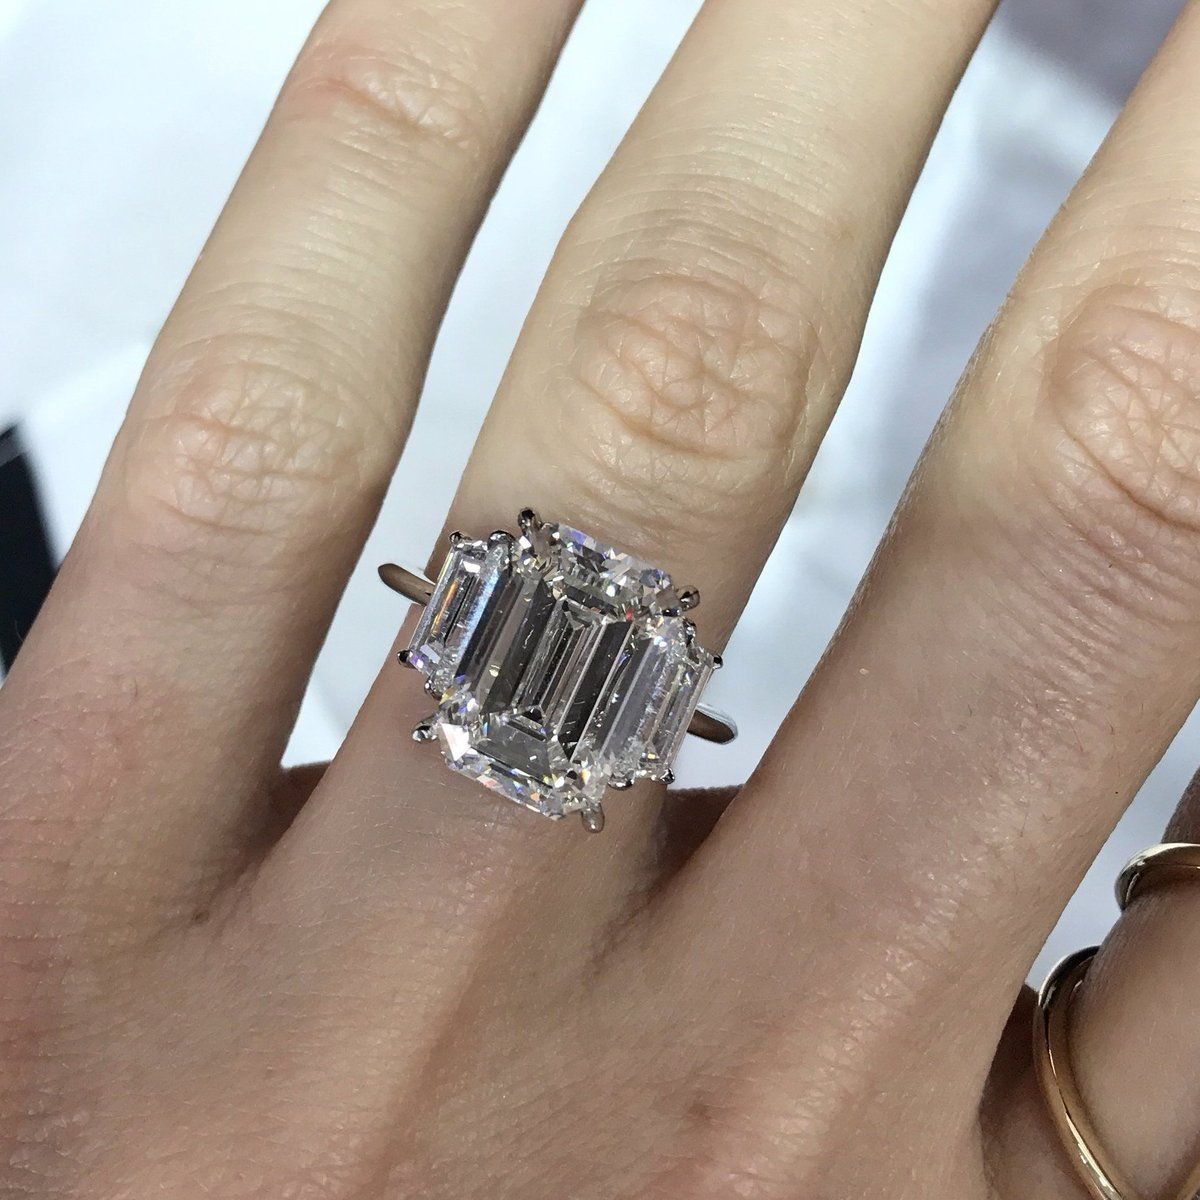 Pin On When We Get Married